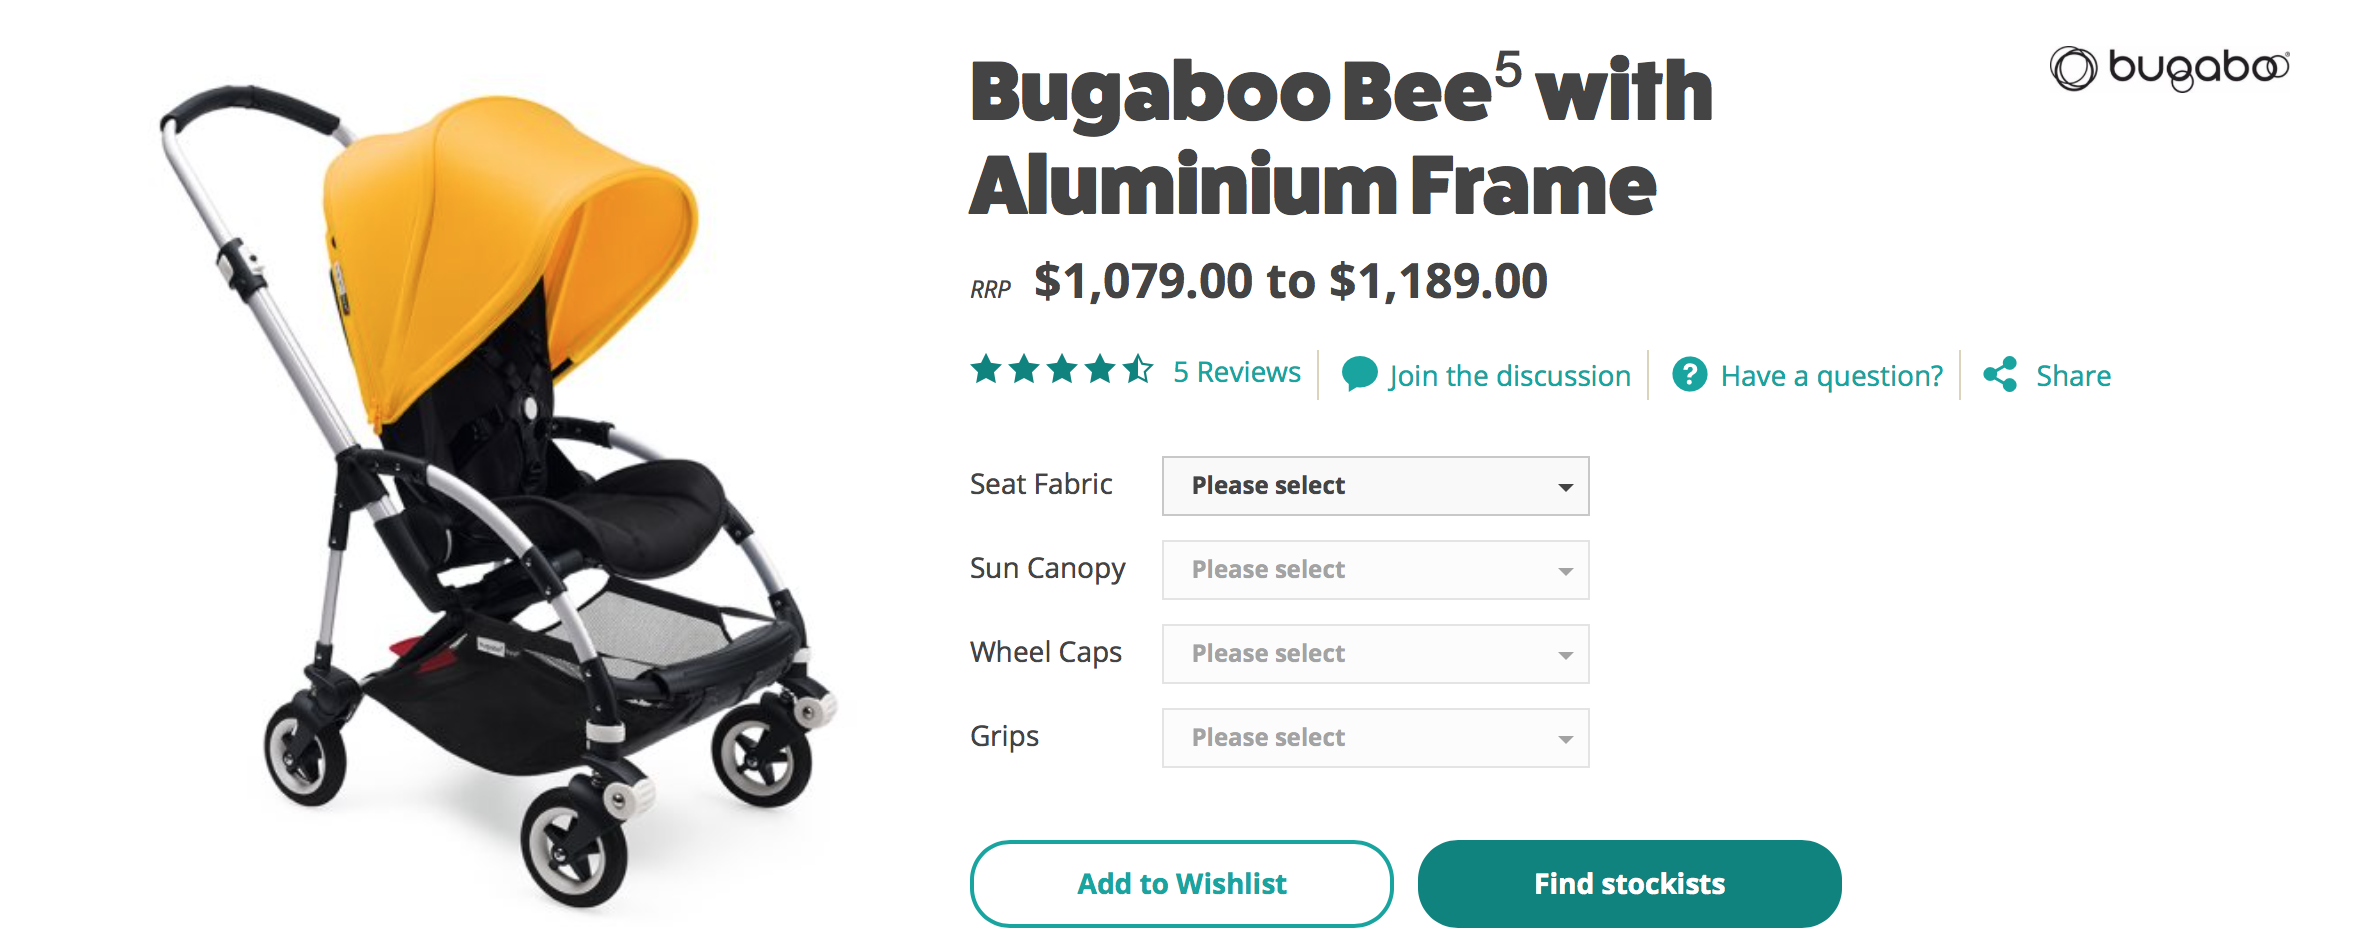 The Baby Industry Bugaboo review